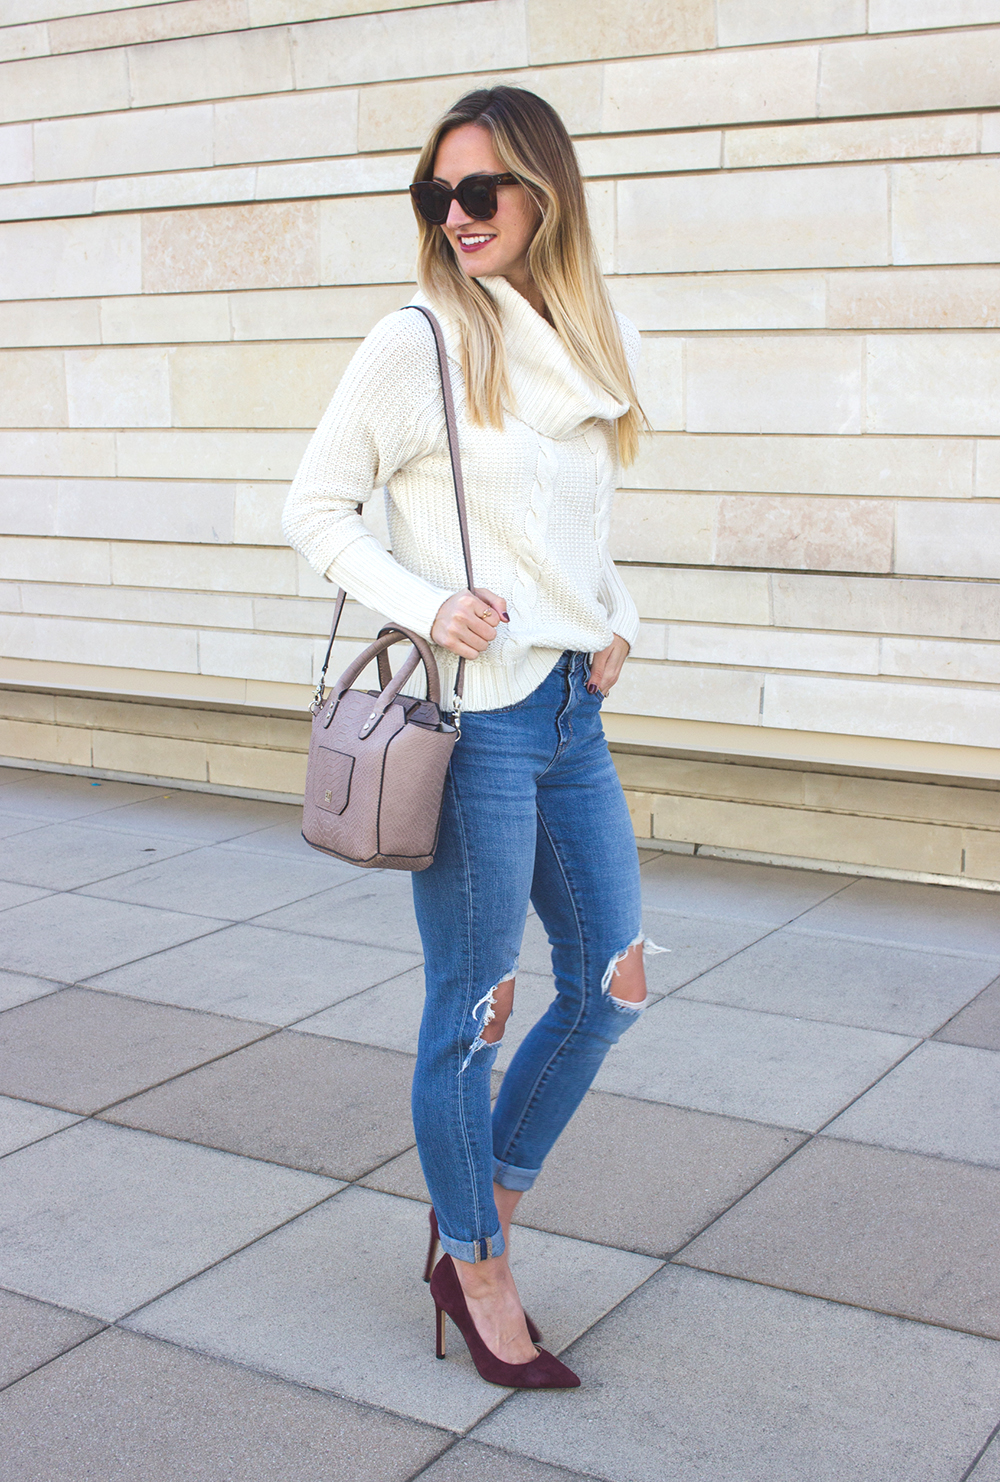 livvyland-blog-olivia-watson-white-cable-knit-sweater-burgundy-suede-pumps-carra-3